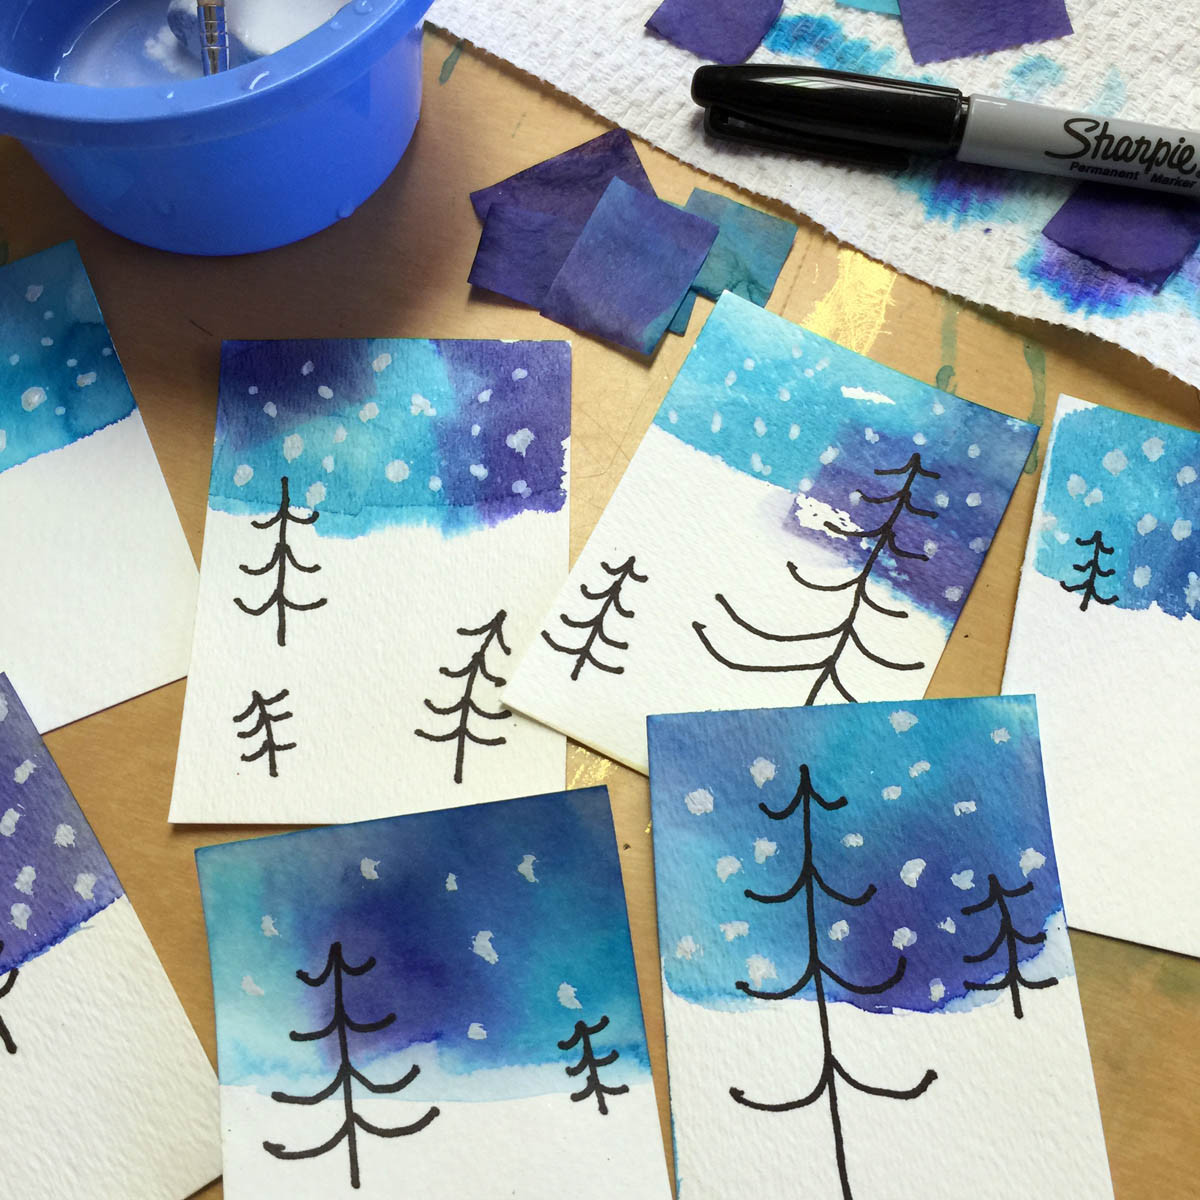 Best ideas about Winter Art Projects For Kids . Save or Pin Bleeding Tissue Paper Skies Art Projects for Kids Now.